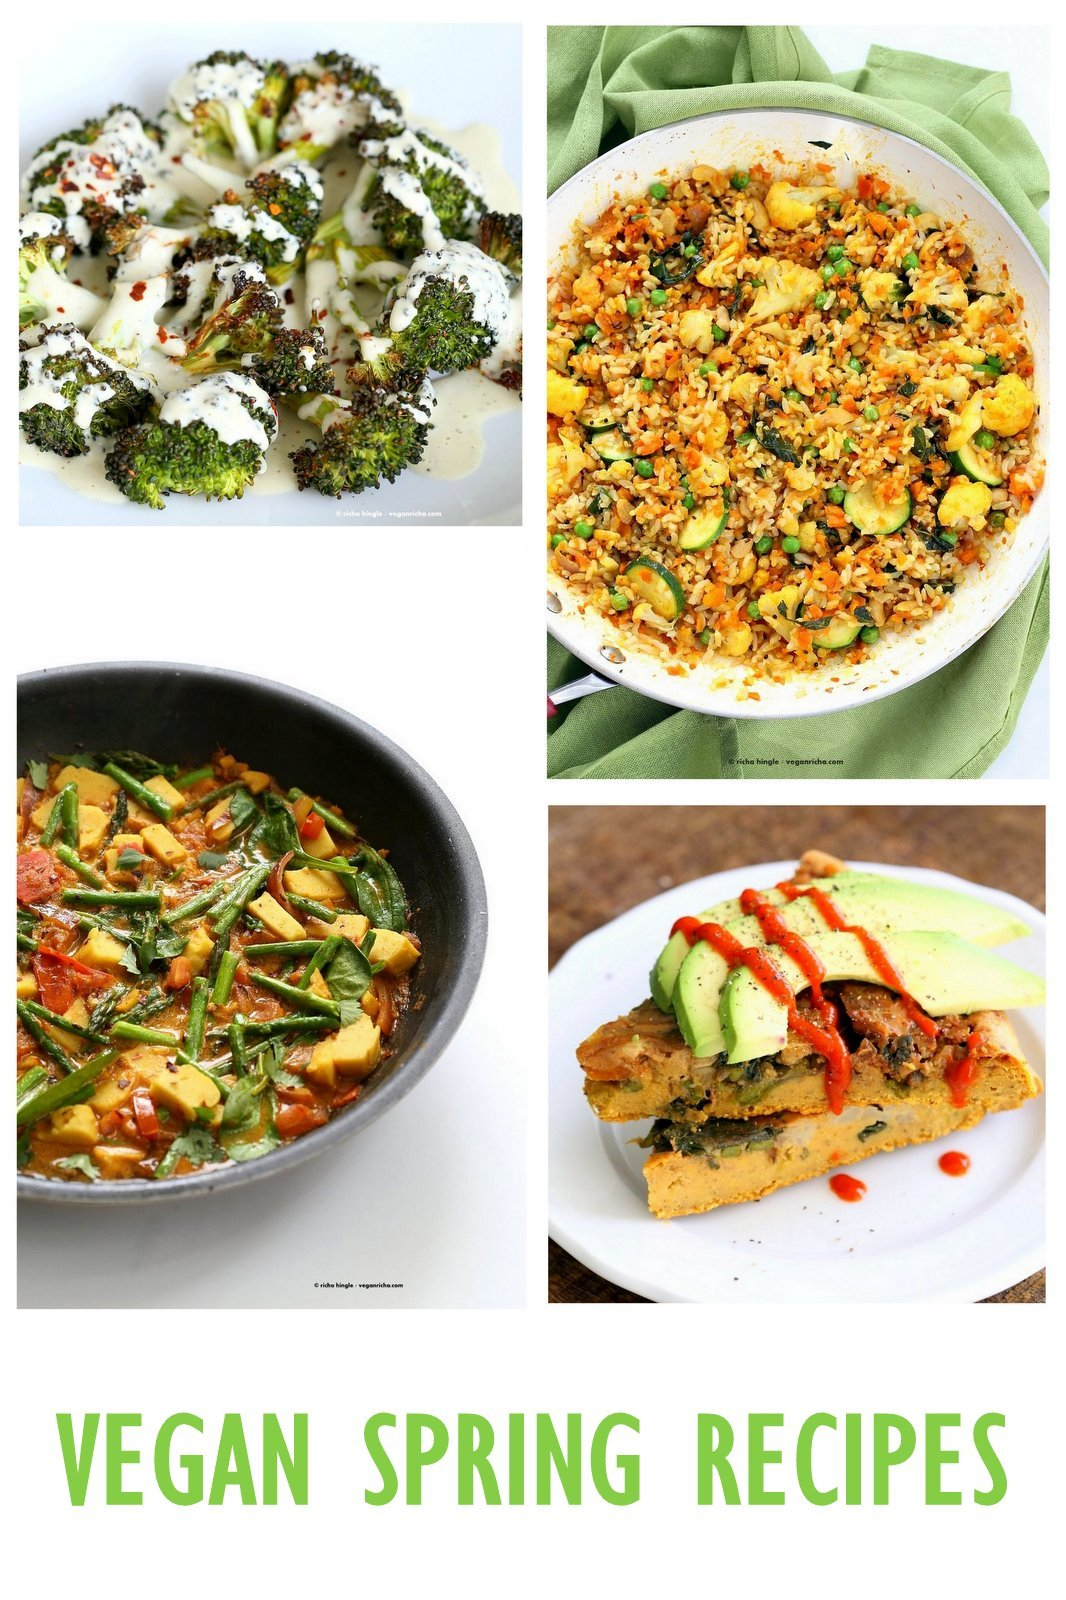 Vegan Spring Recipes. Spring Dinners, Soups, Appetizers and Desserts with seasonal produce like Asparagus, Strawberries, Carrots, Brussels Sprouts and more. Gluten-free Soy-free Options | VeganRicha.com